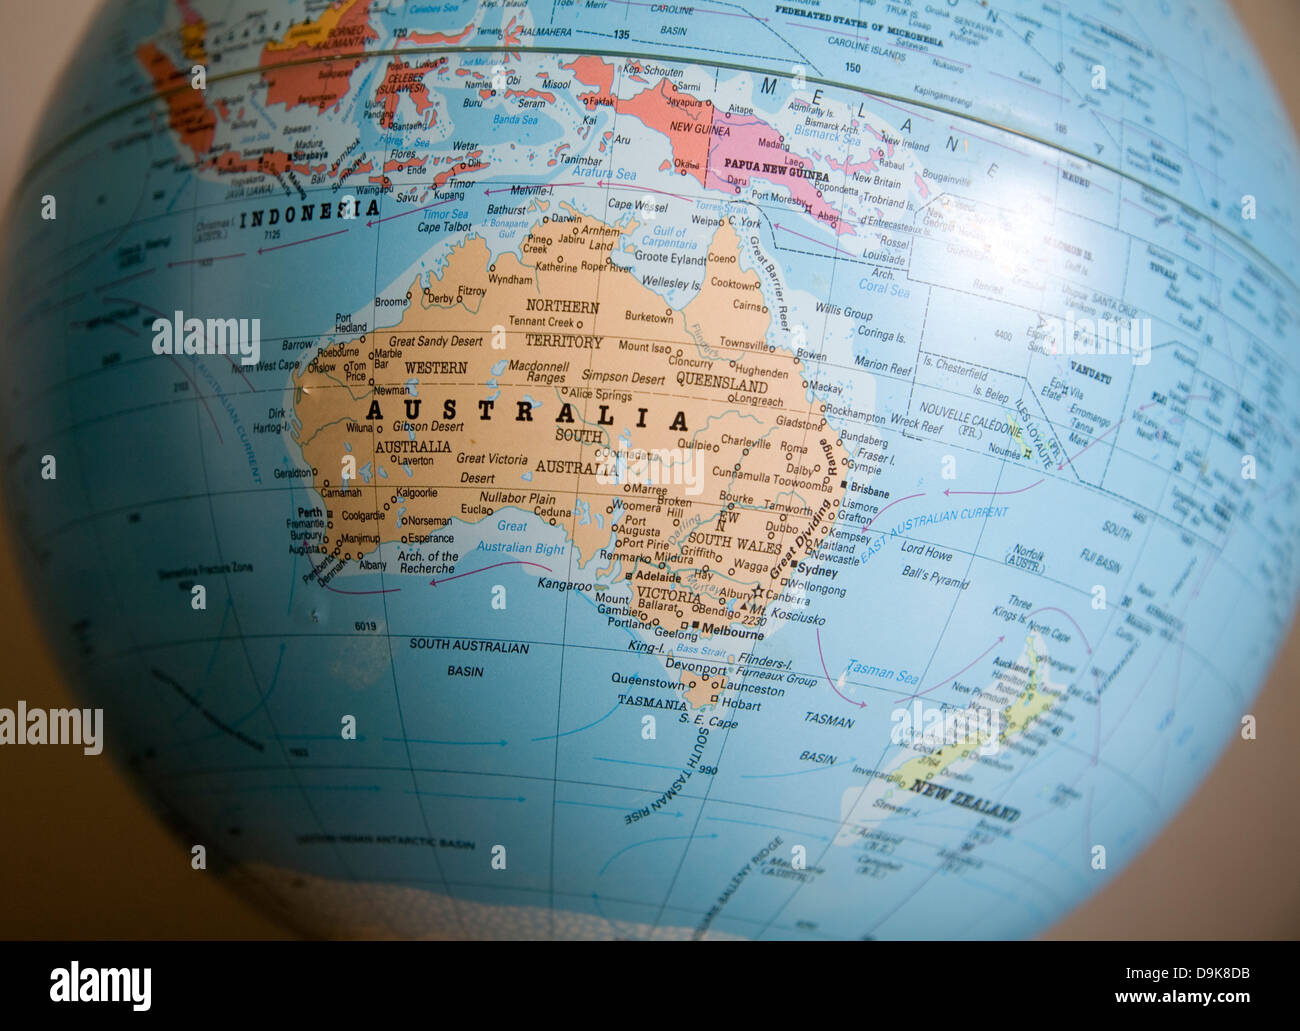 Australia Continent And Country On The World Map Photo – Location of Australia on World Map